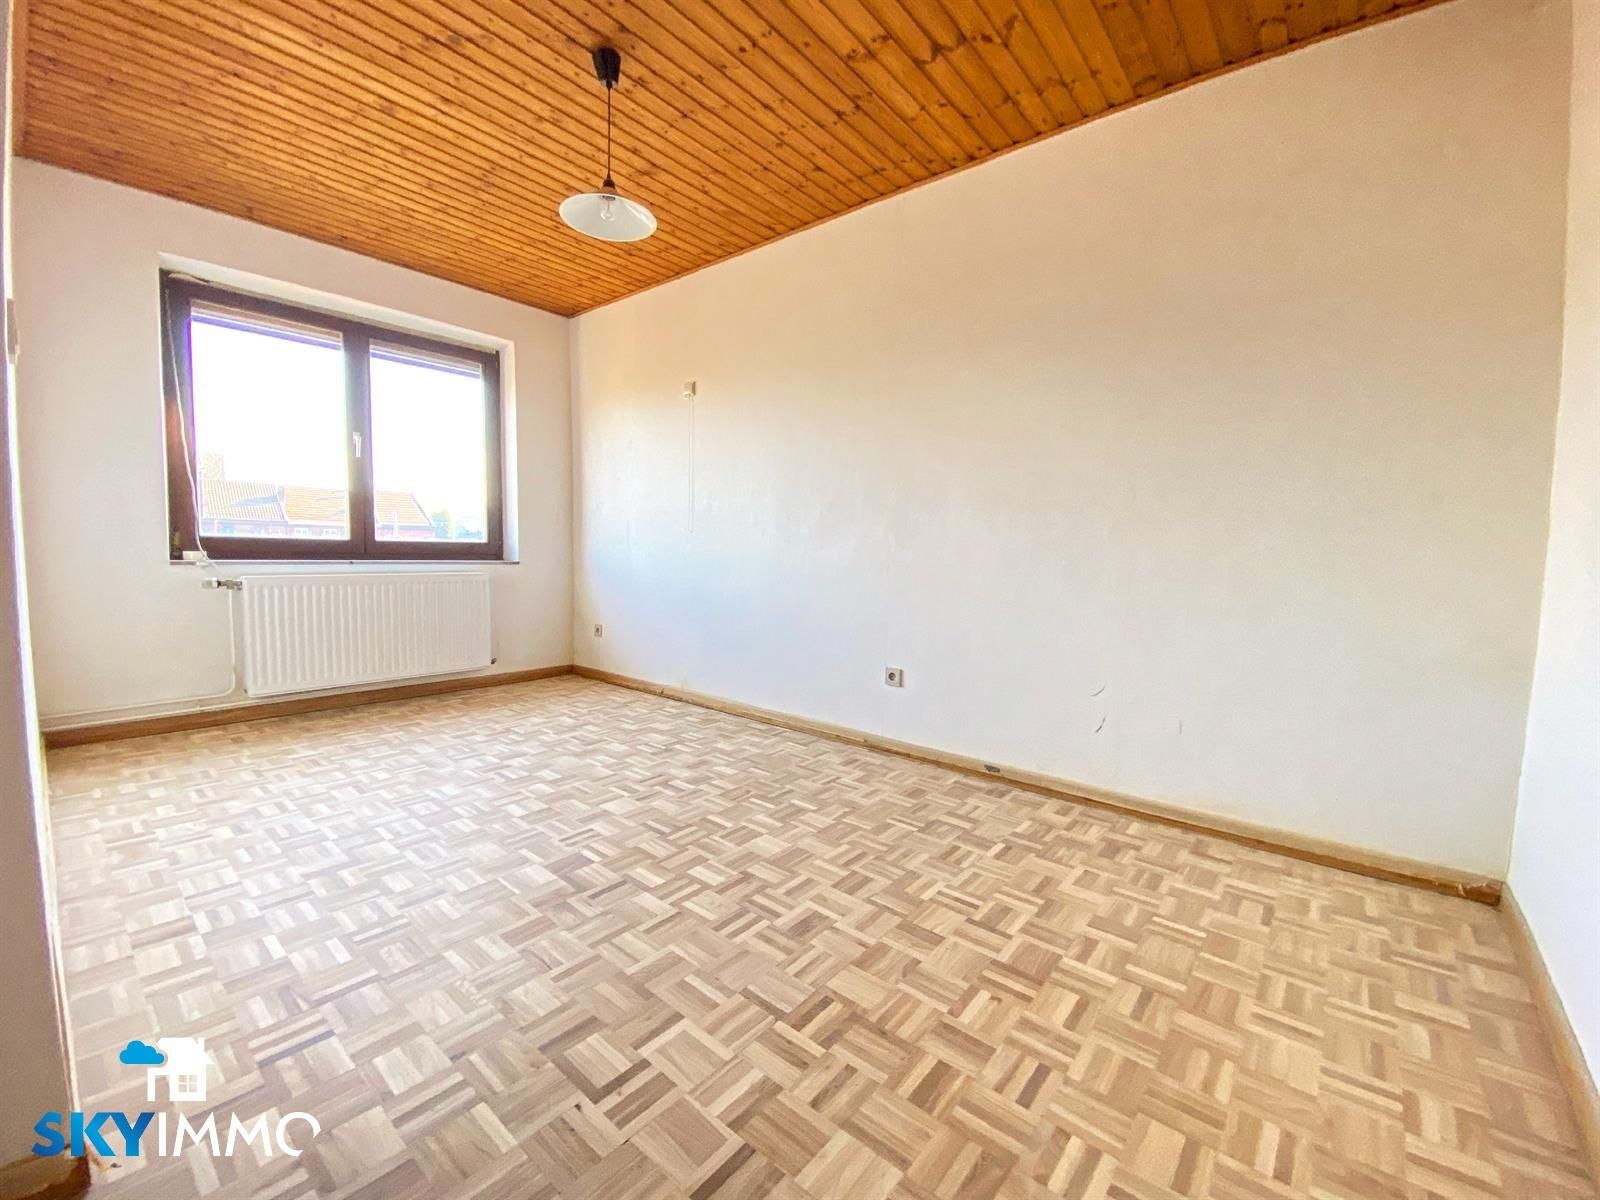 House - Flemalle - #4302890-17